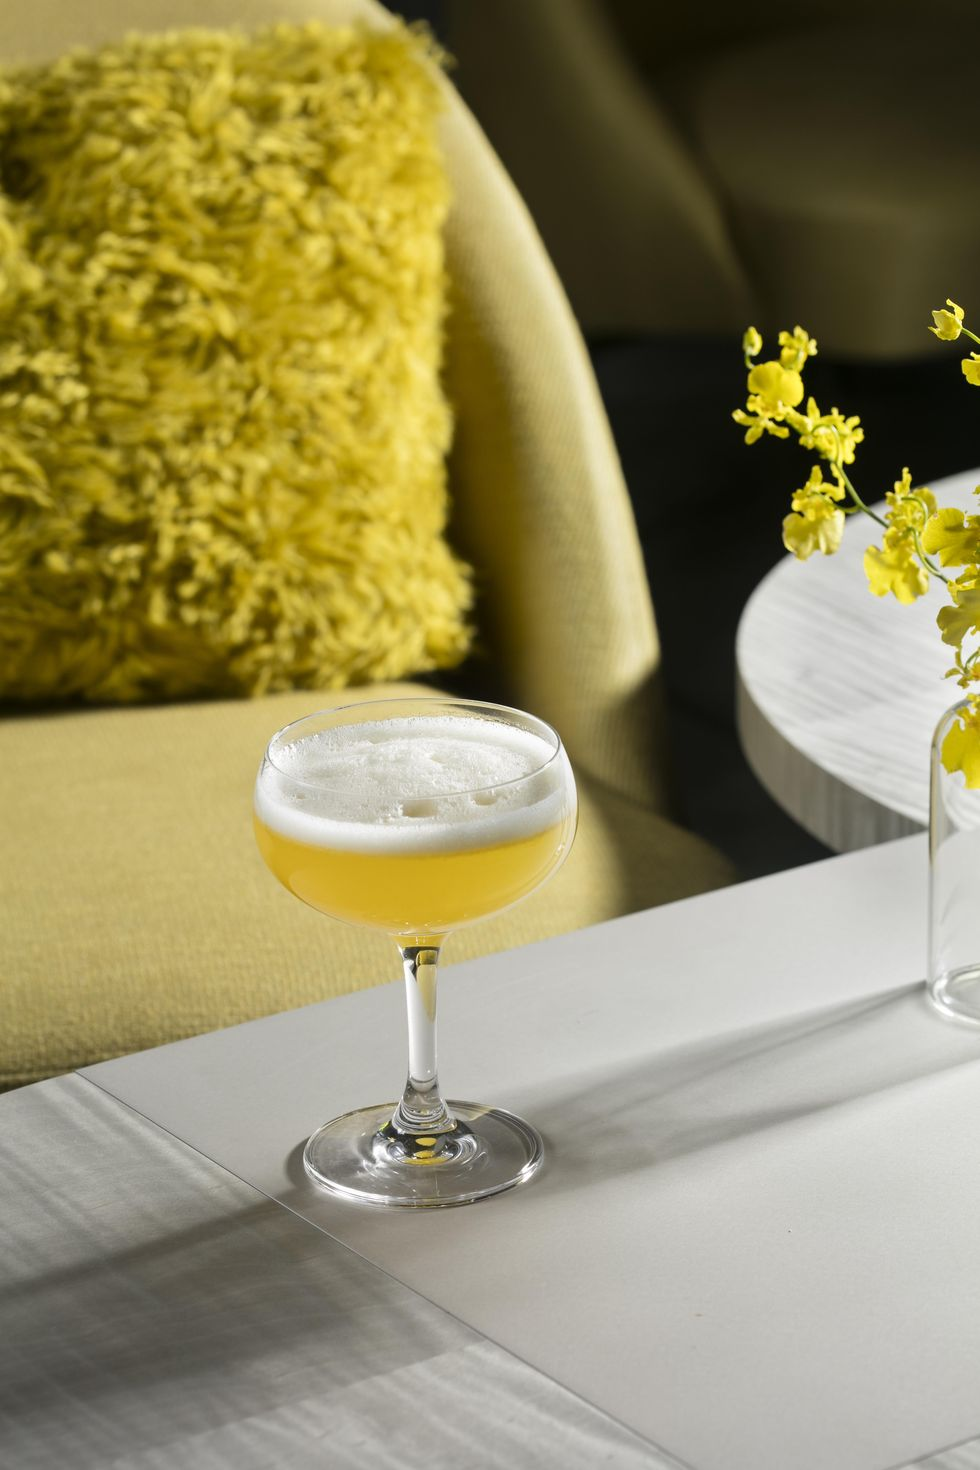 Orange Blossom – Make These Tasty Gin Cocktails Yourself and Enjoy the Last Sips of Summer